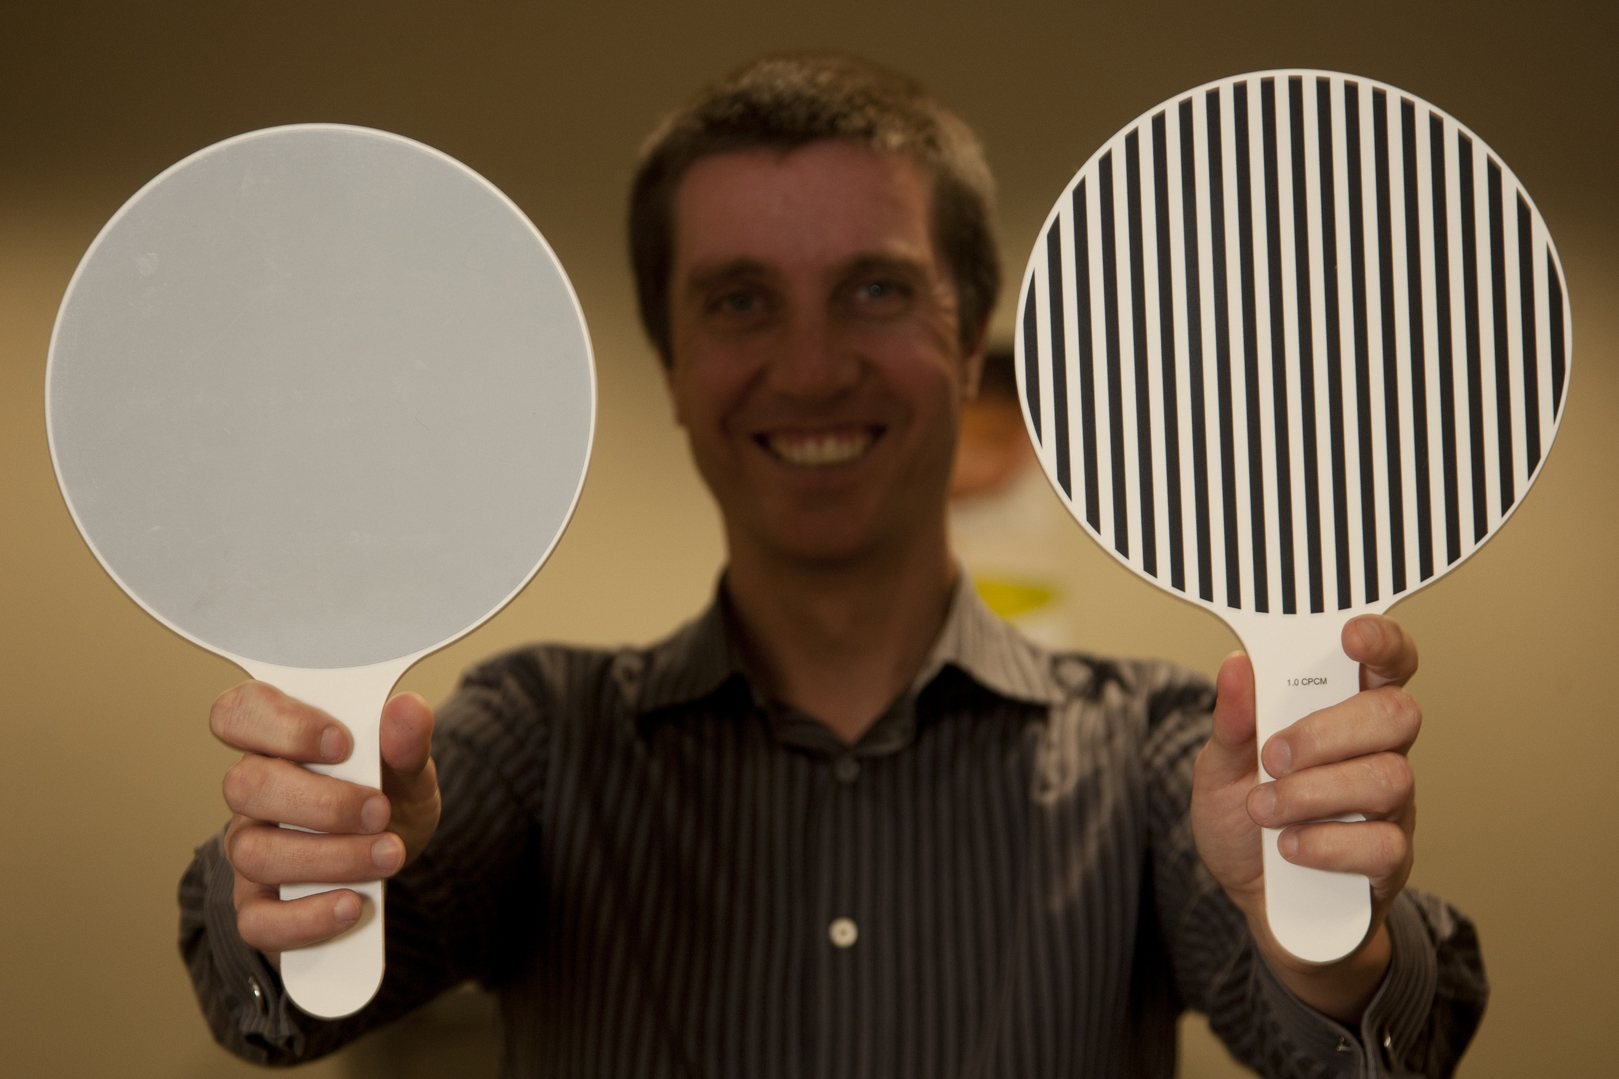 Man holds up two paddles, one is striped and the other is grey.